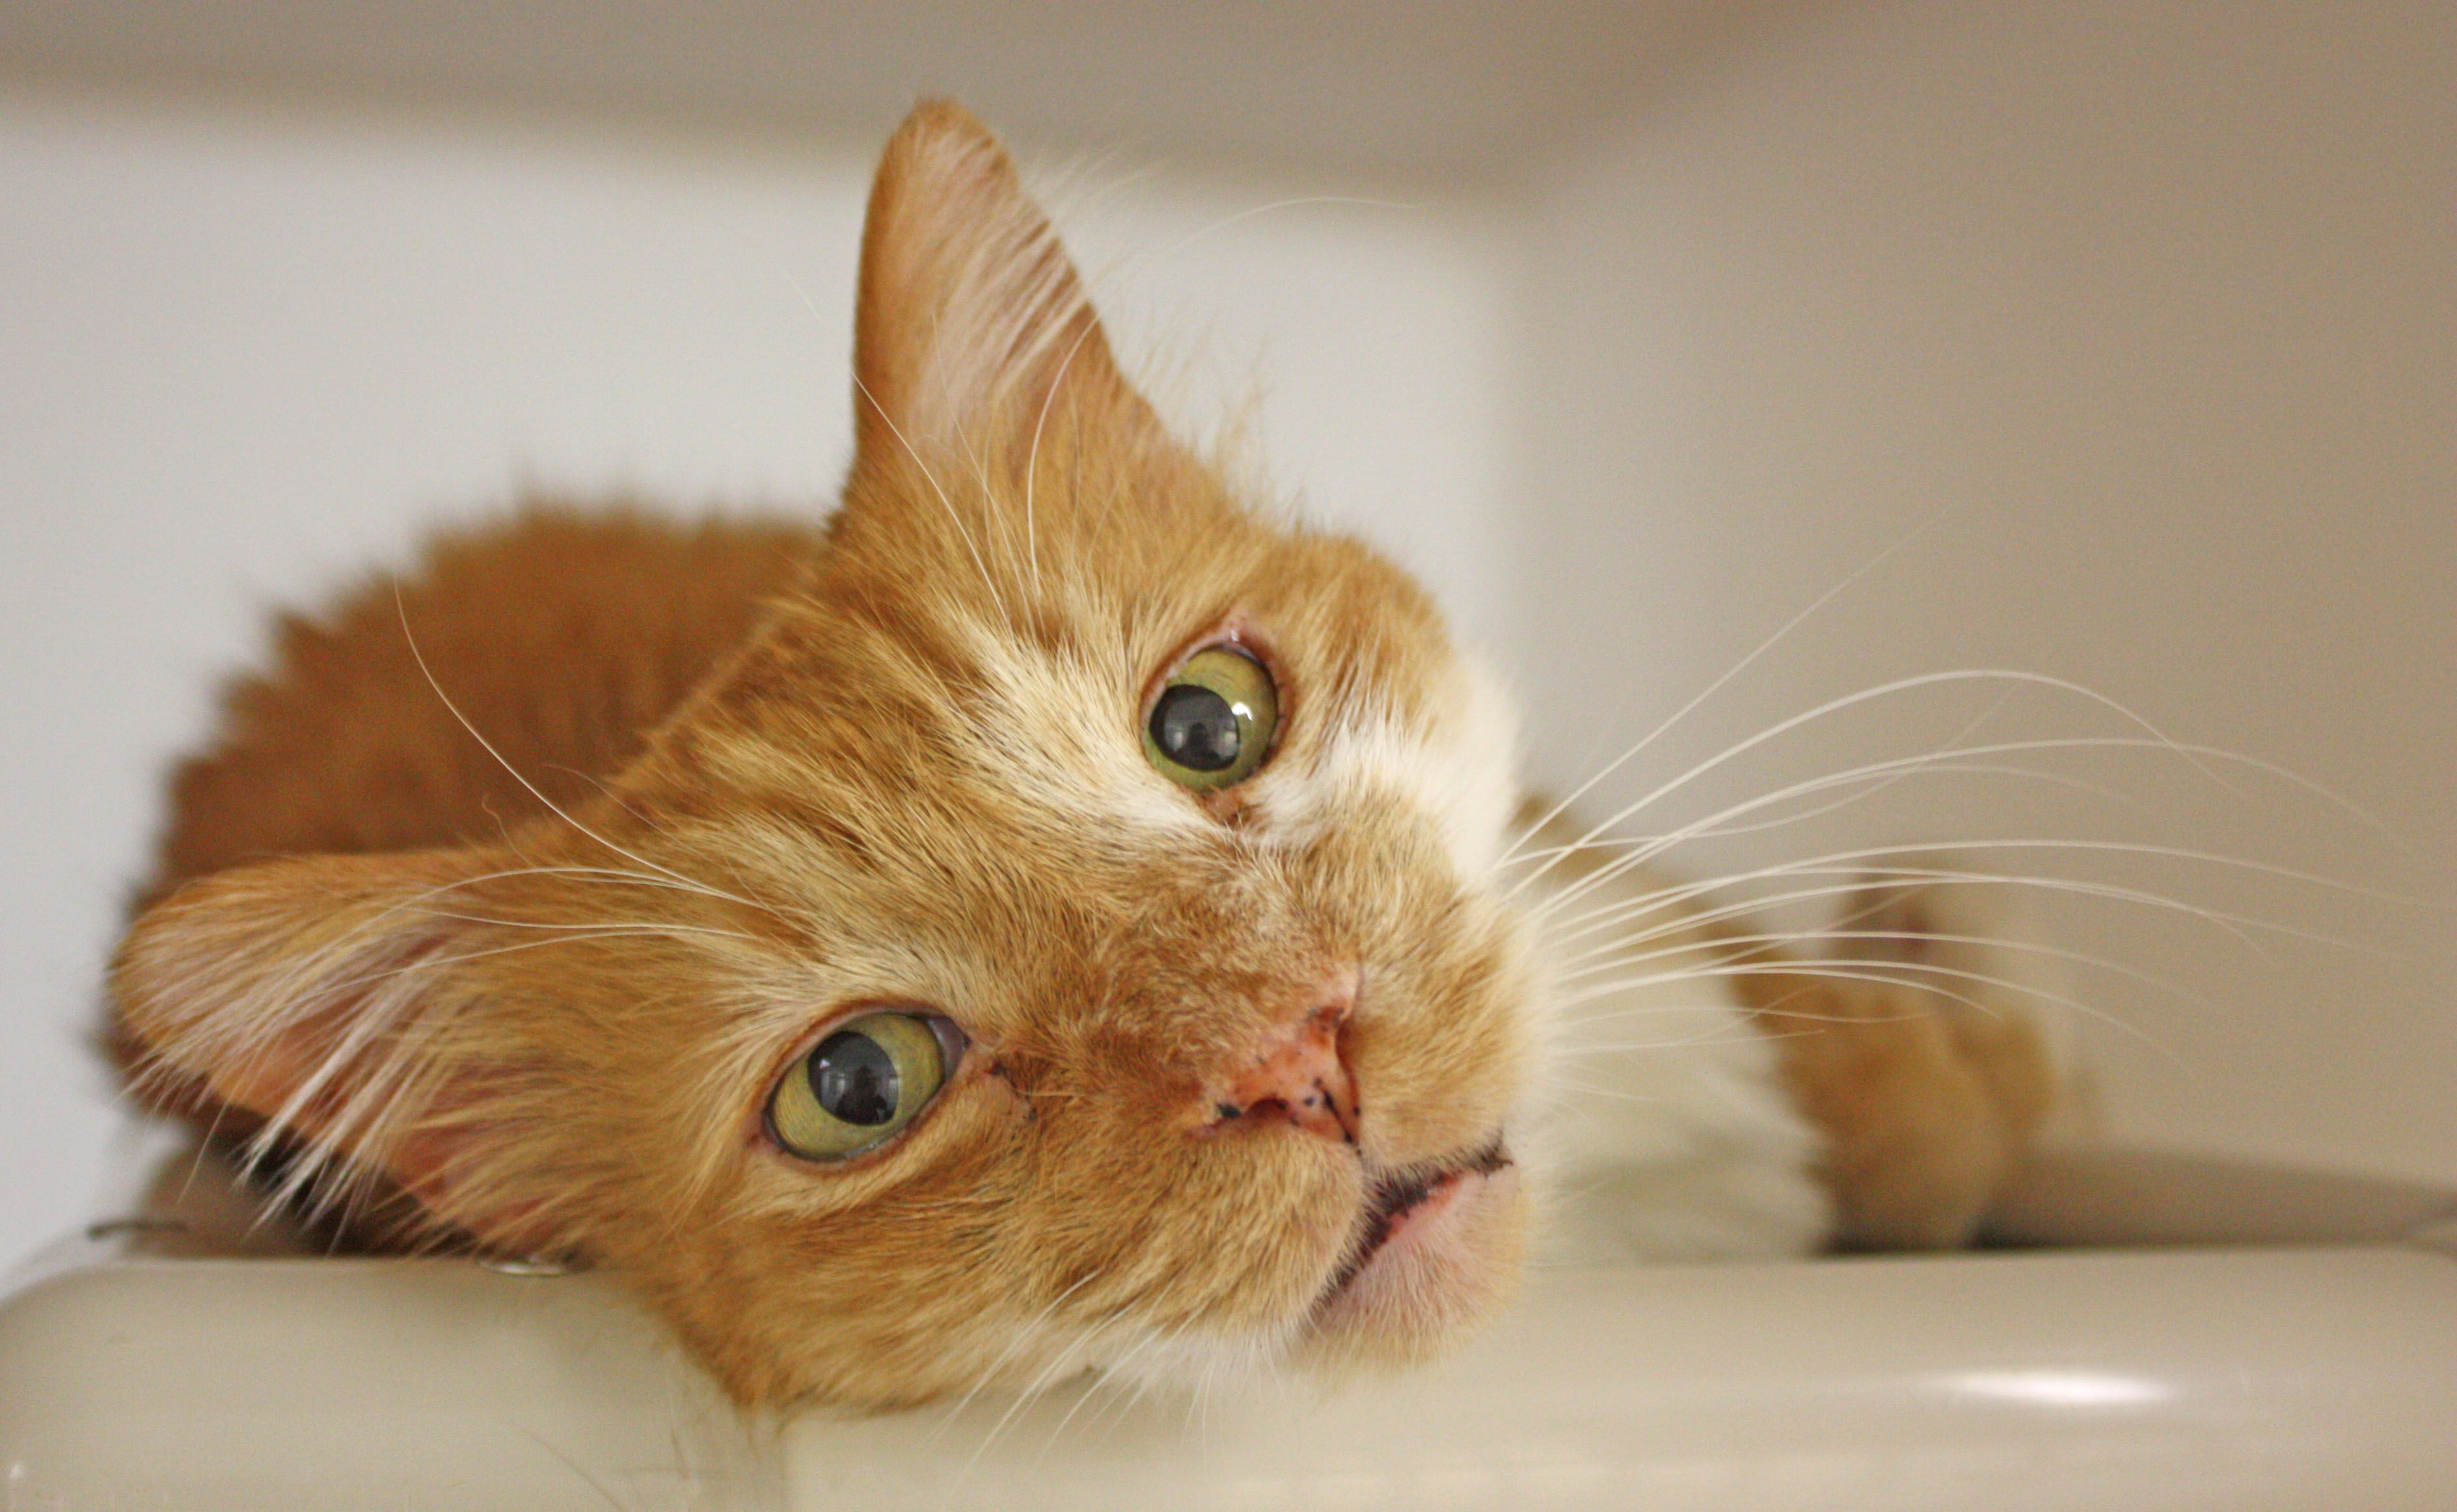 Sunny is a sweet senior kitty looking for a lowkey home